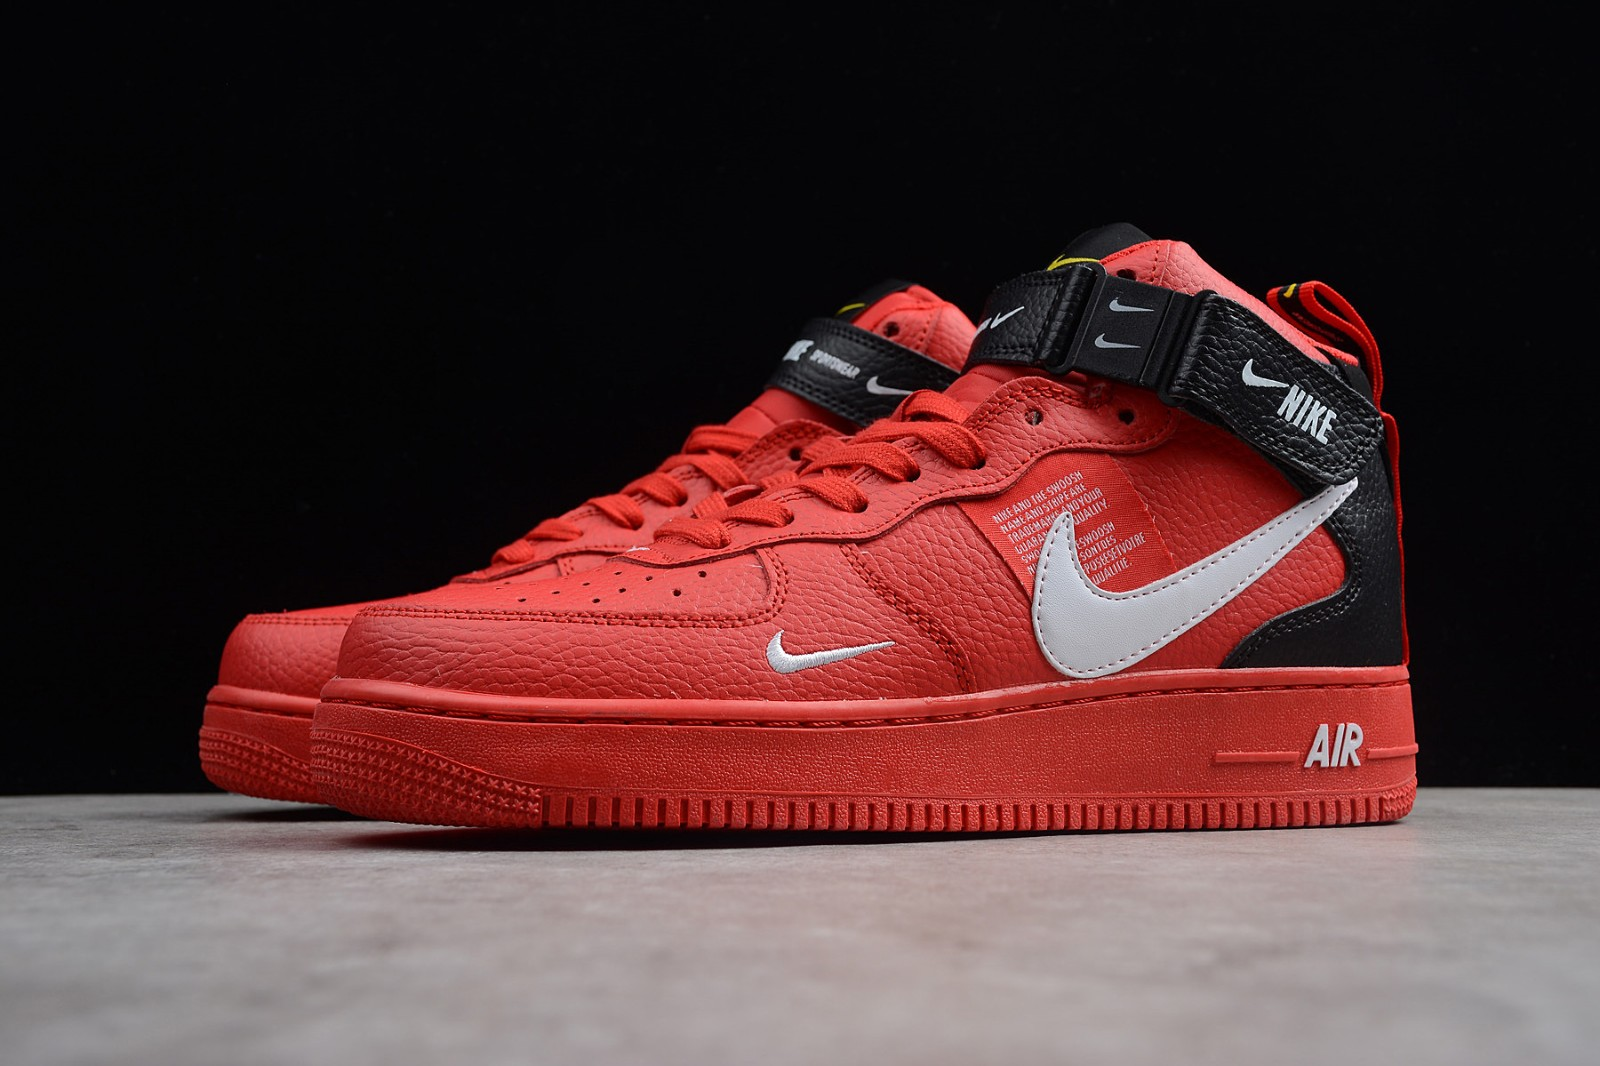 Nike Air Force 1 Mid 07 LV8 University Red White Black 804609 605